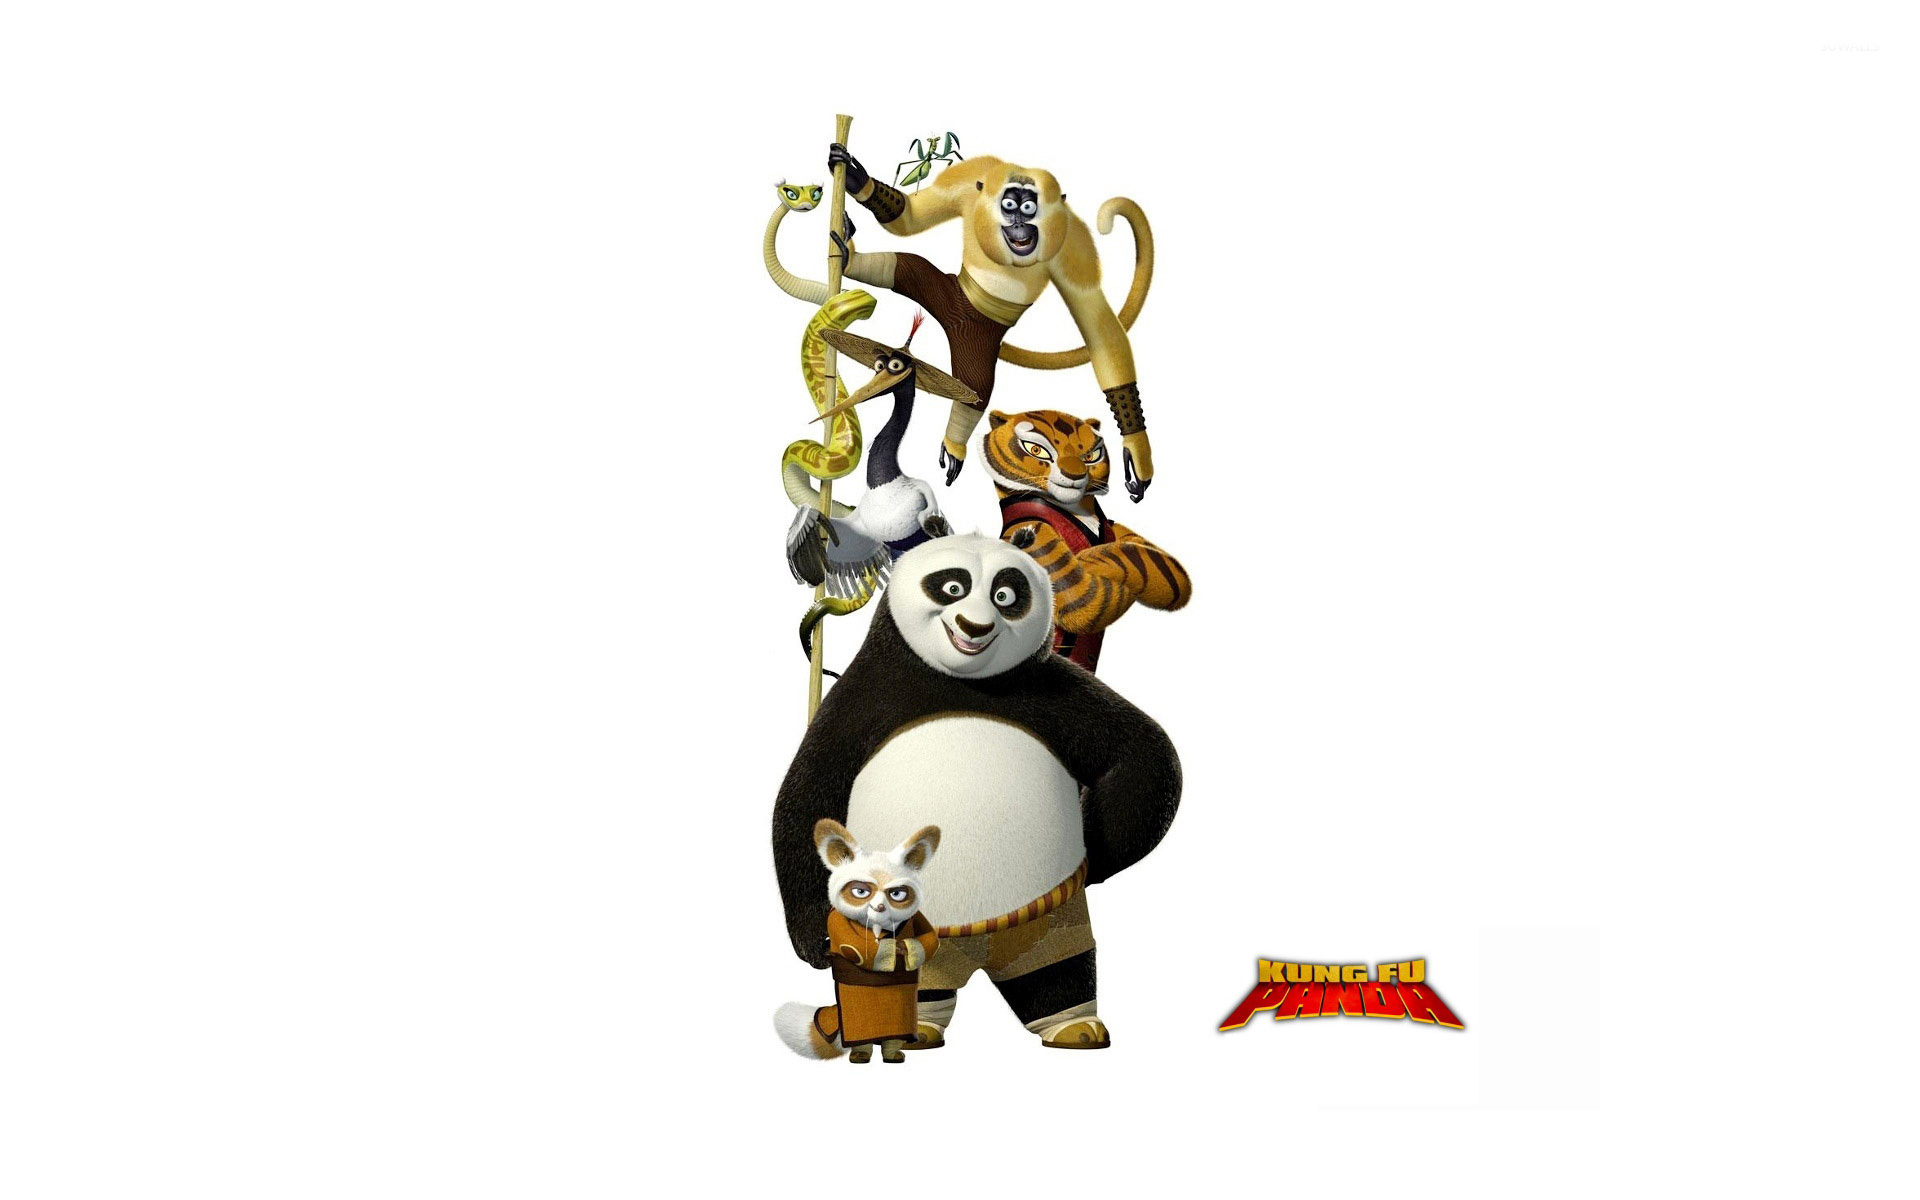 kung fu panda [4] wallpaper - cartoon wallpapers - #4896